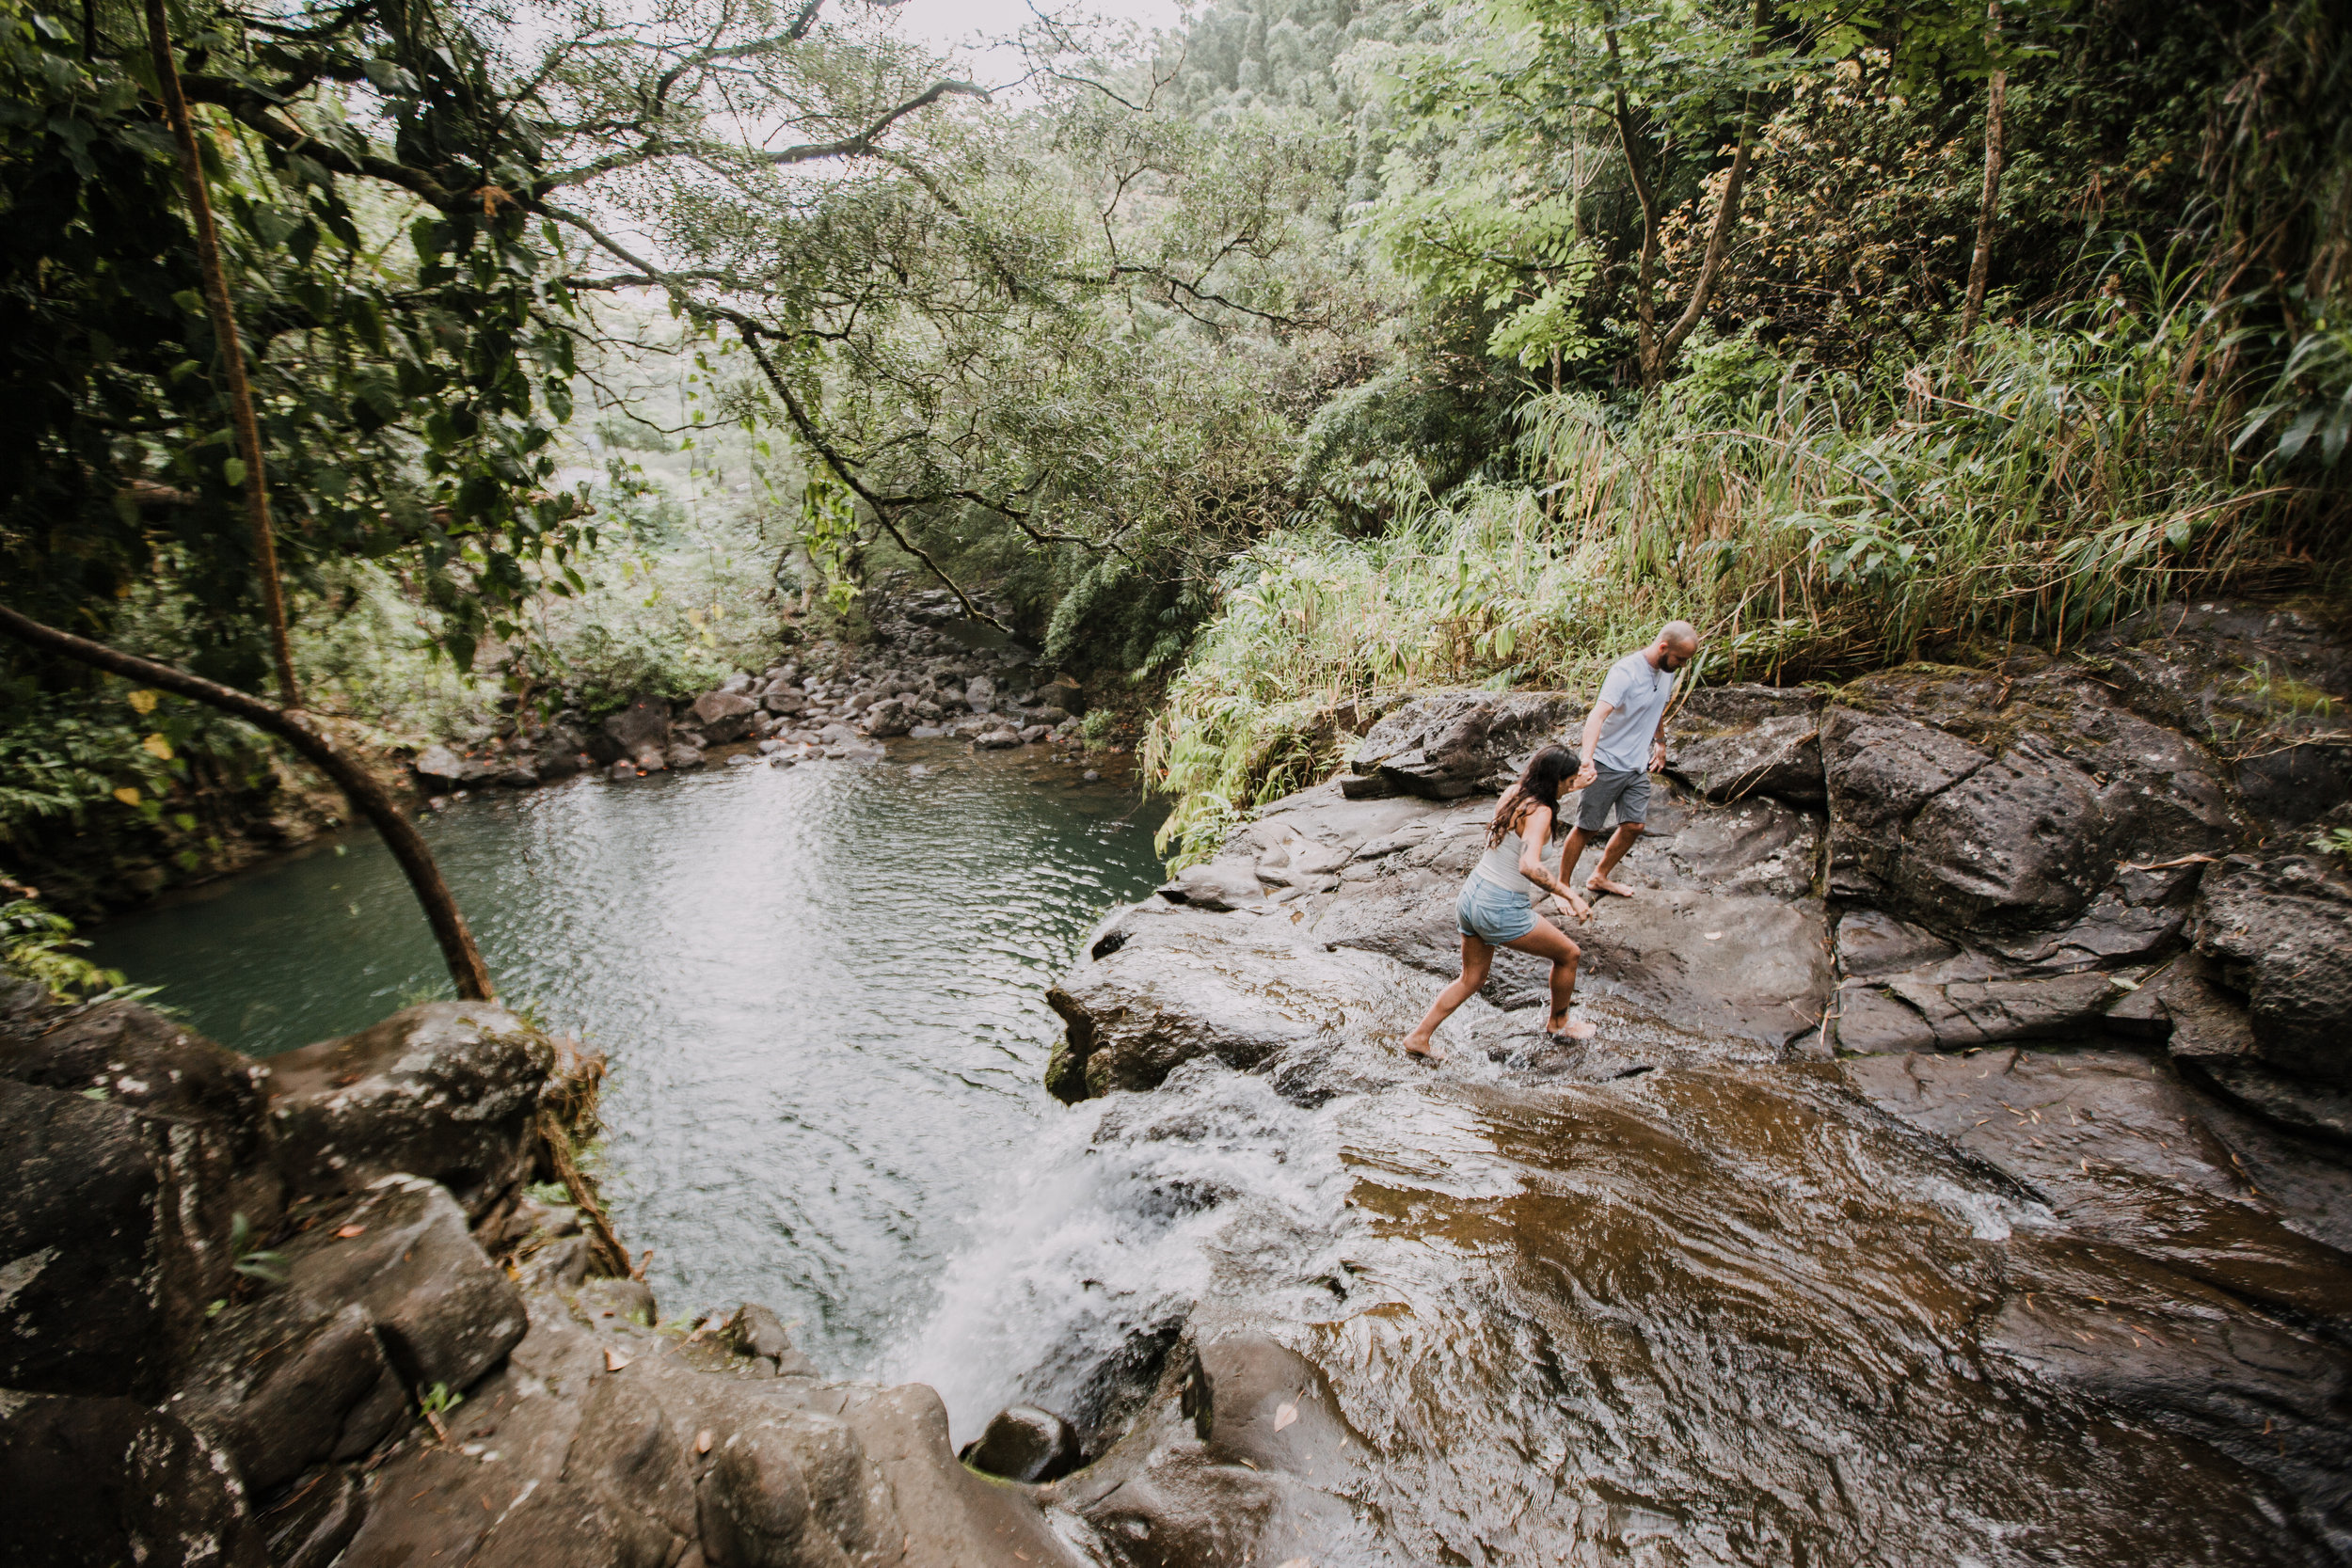 island hiking, hawaii waterfall, road to hana, maui waterfall, hawaii wedding photographer, hawaii elopement photographer, maui wedding, maui engagements, maui elopement, maui jungle